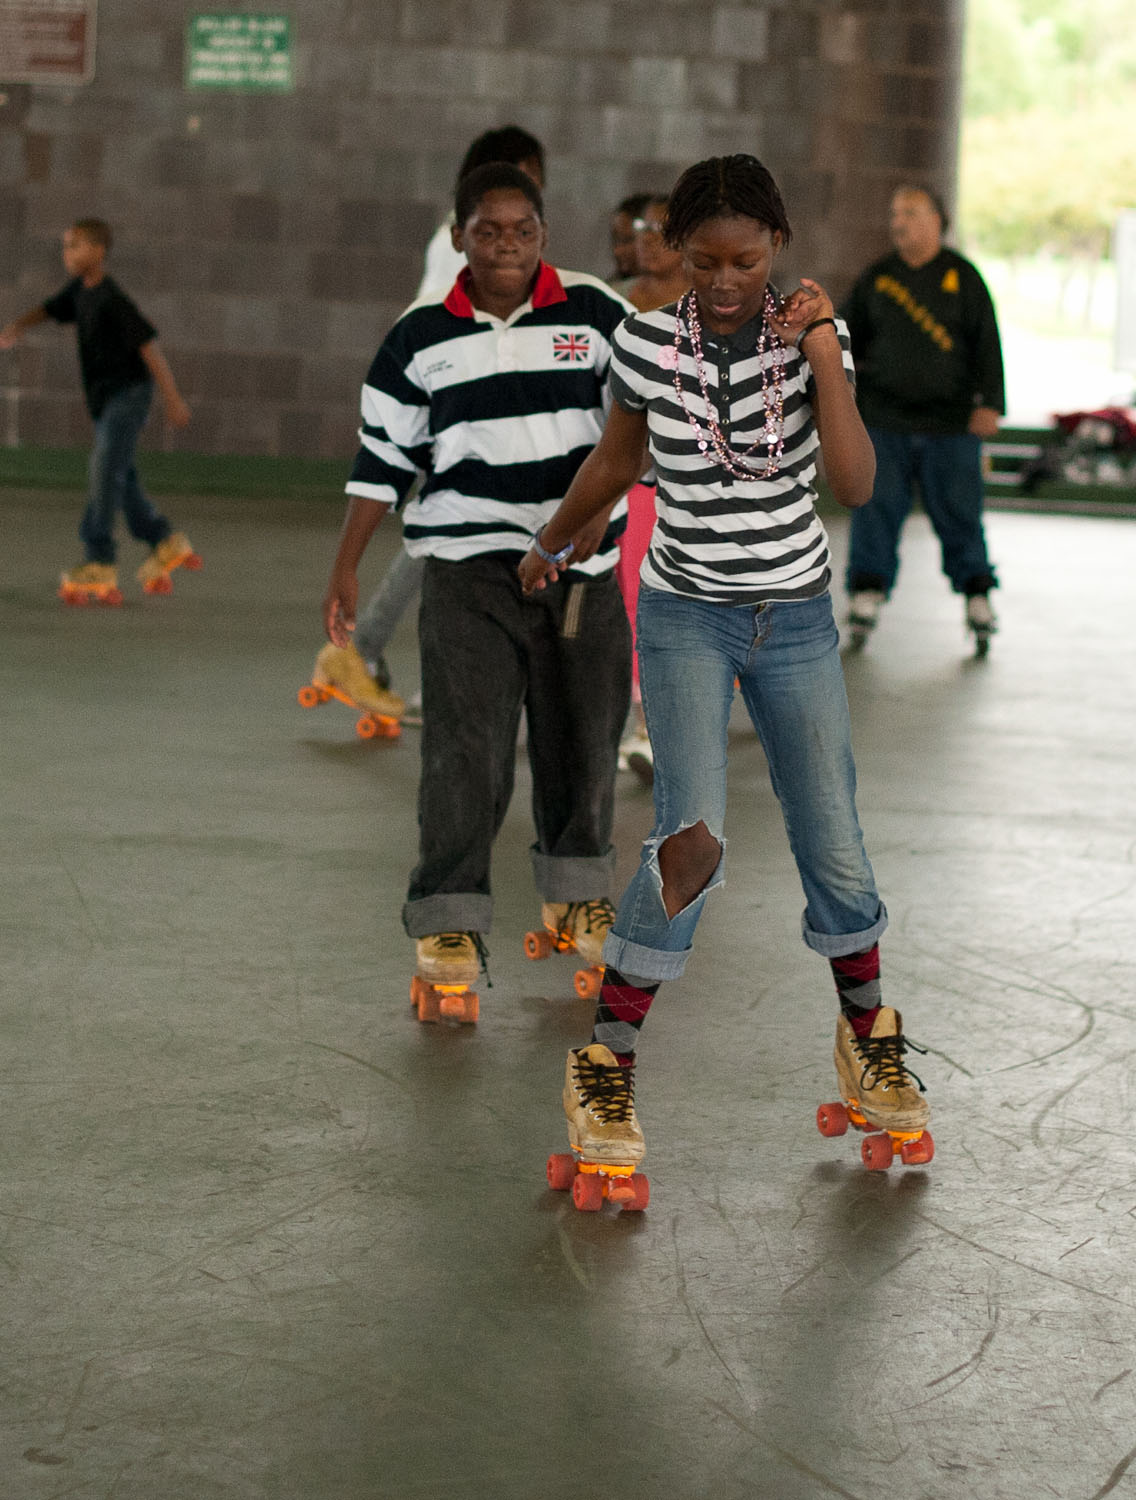 DC roller skaters in Anacostia Park Skating Rink. Photographed by Marvel Gay 2012